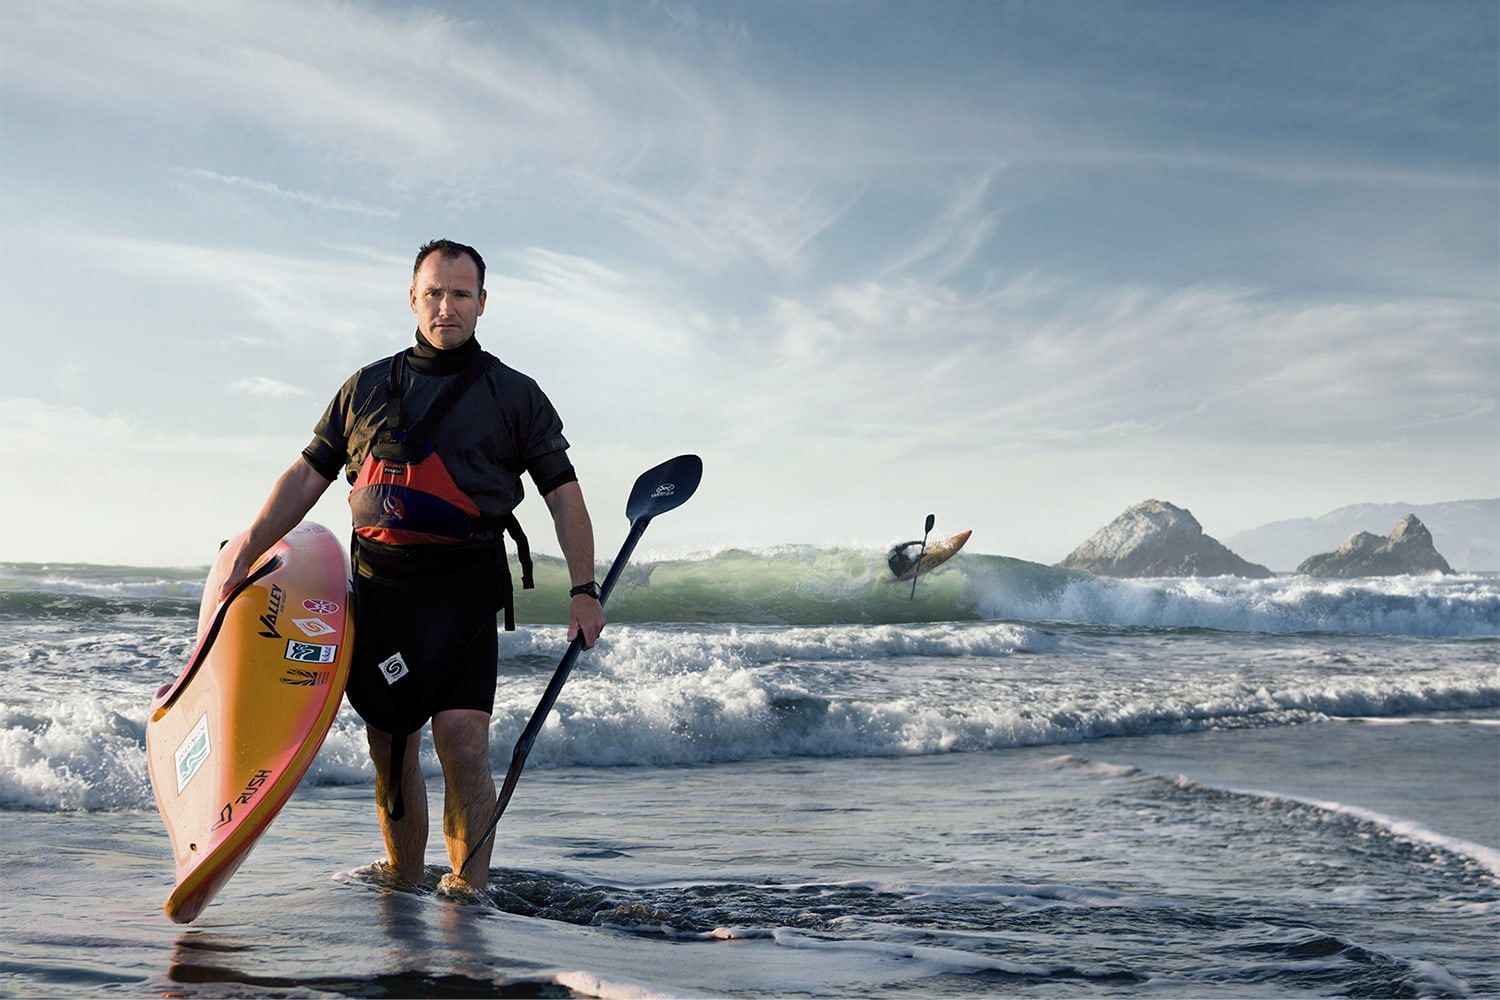 Athlete-Man-holding-a-kayak-and-paddle-at-the-beach-waves-Rod-McLean